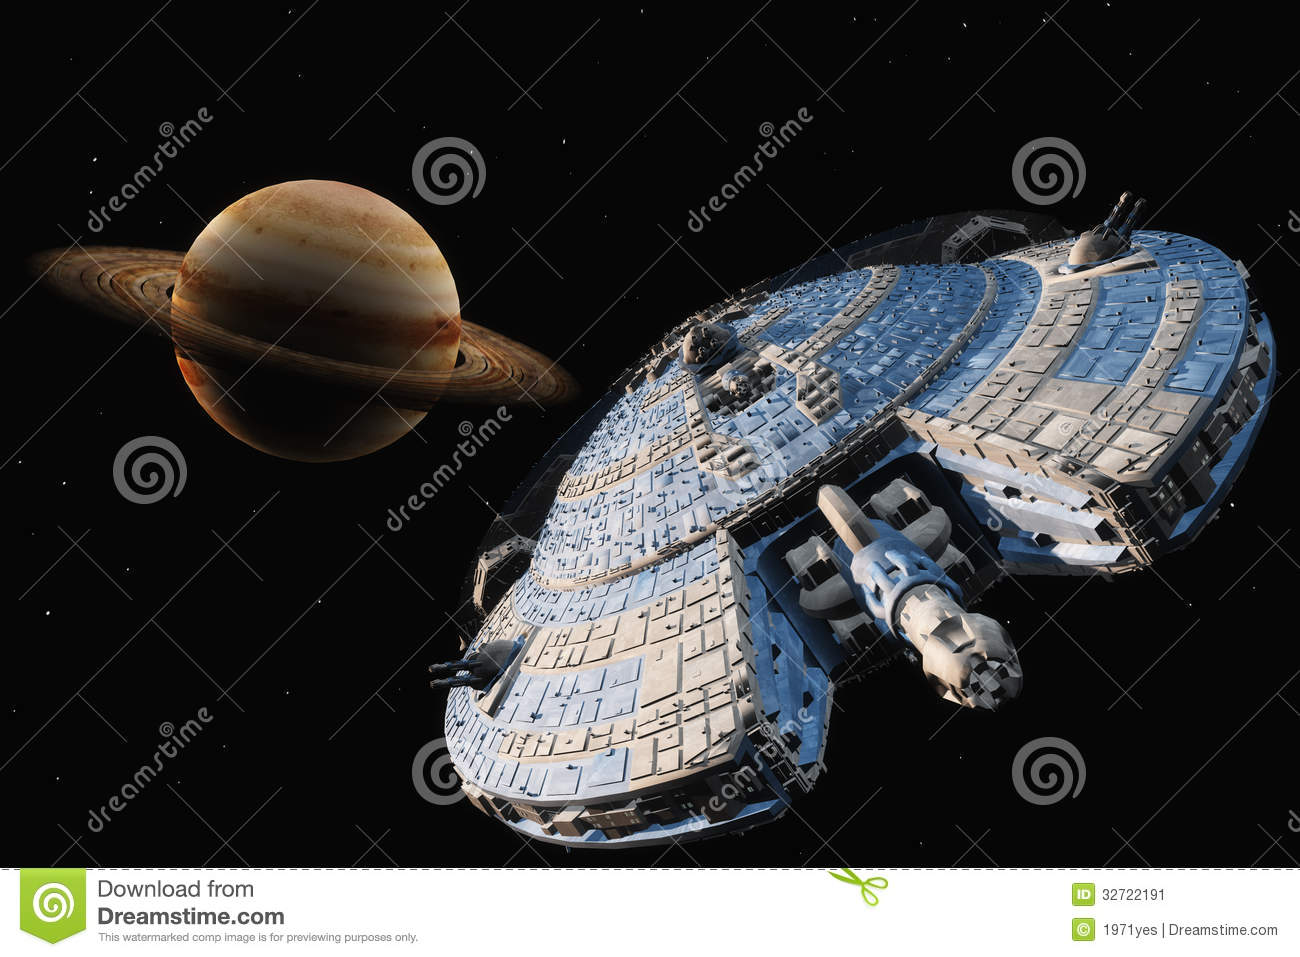 Space Transport Stock Image - Image: 32722191